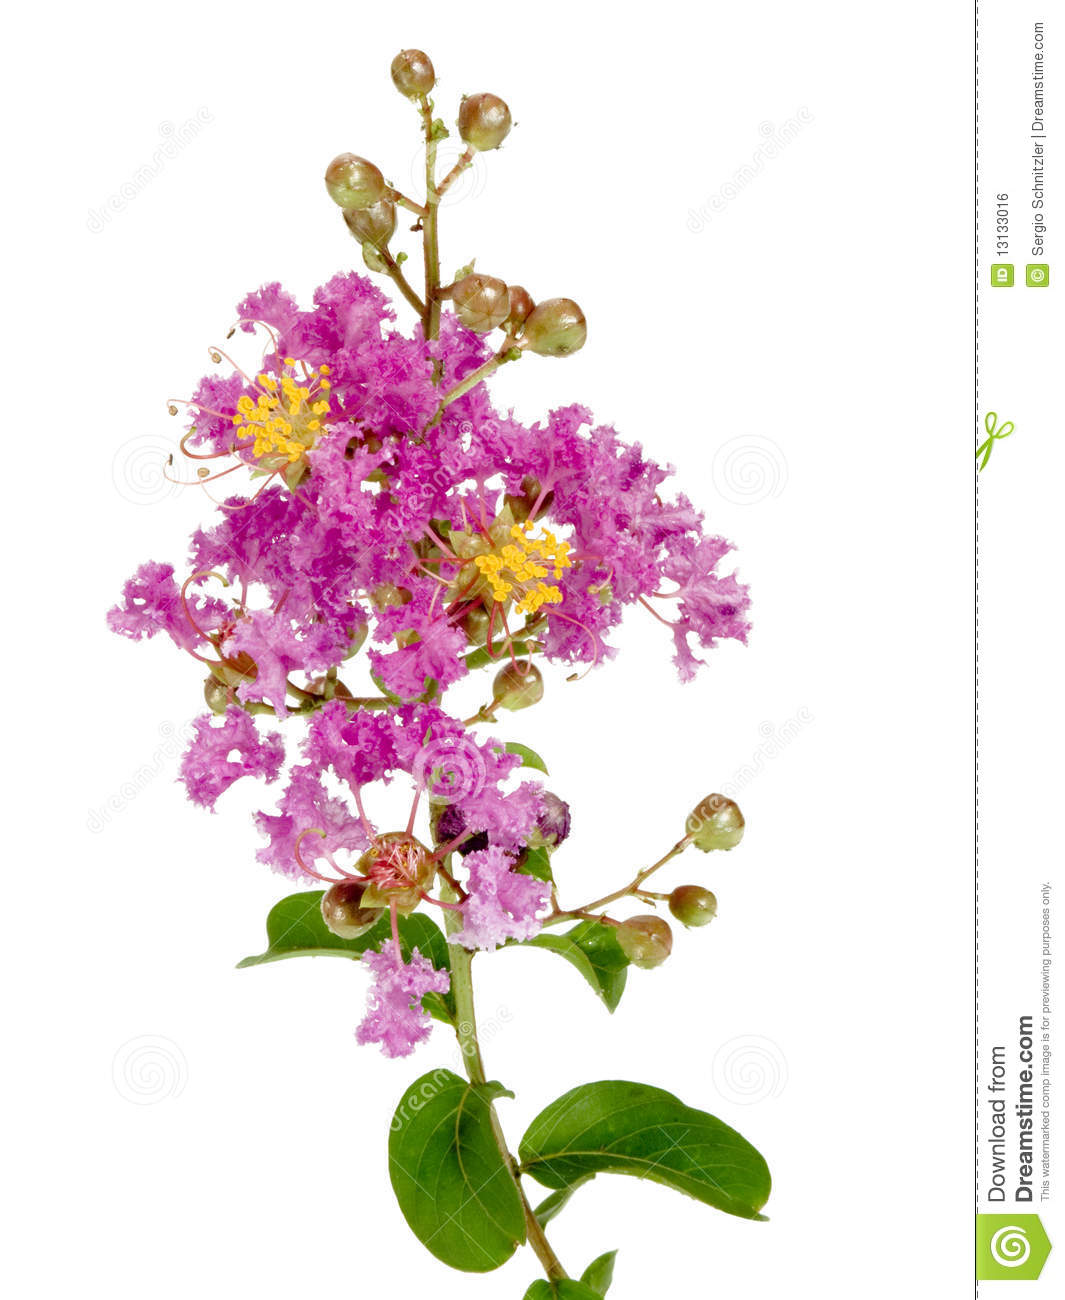 Crape Myrtle clipart #14, Download drawings